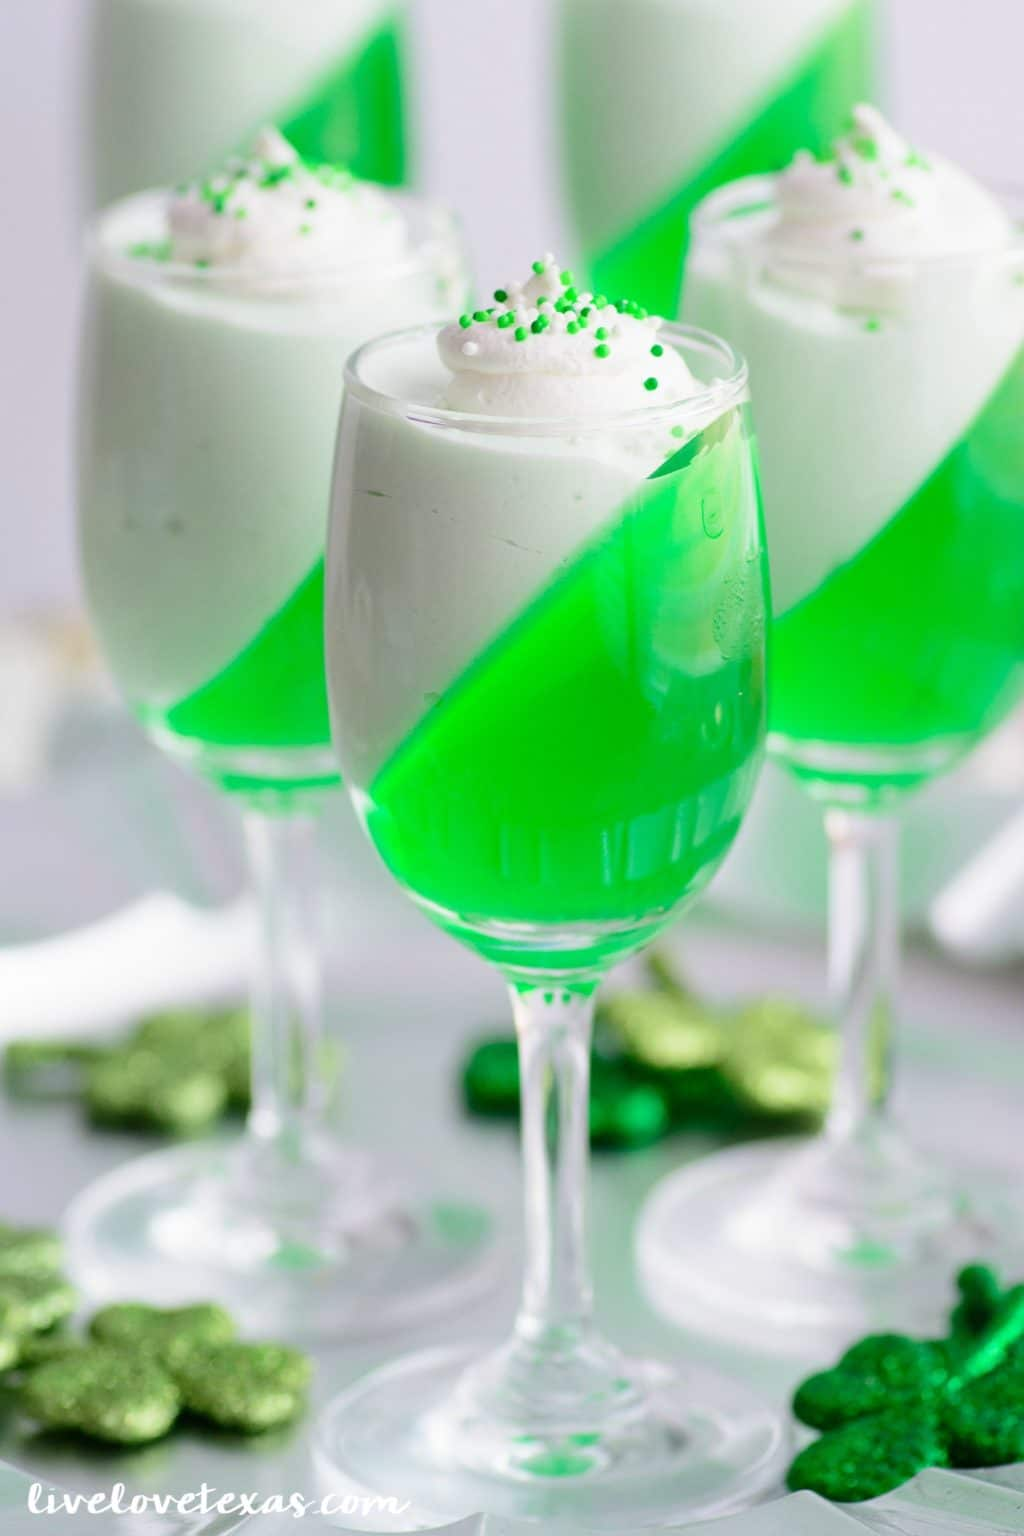 St. Patty's Day Jello Parfaits Recipe. This festive dessert recipe only has two ingredients and is so easy to make!